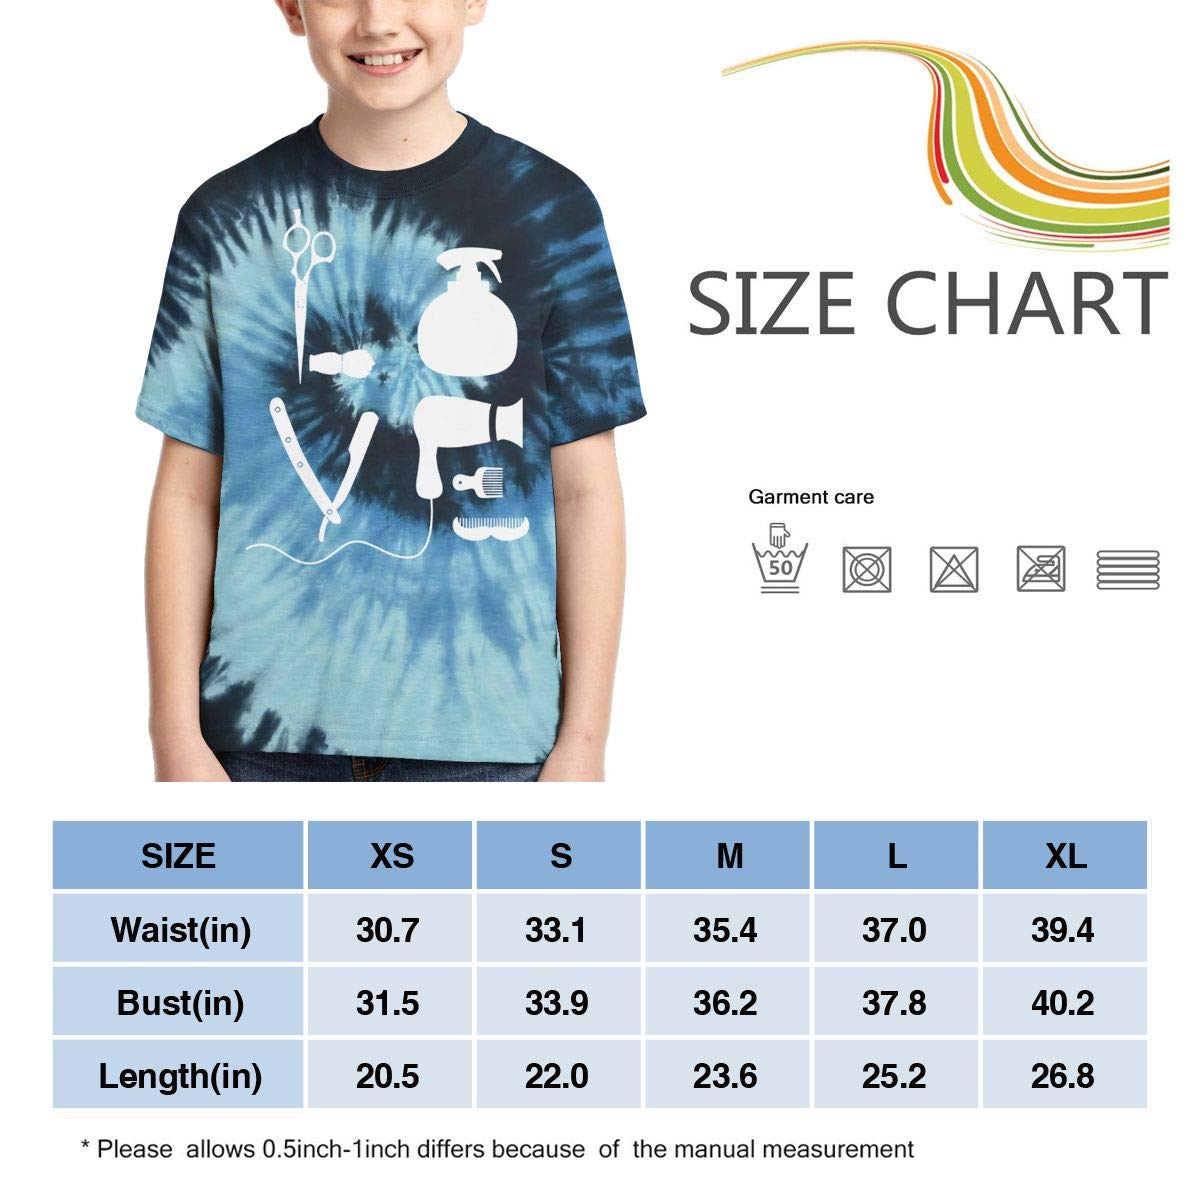 AMODECO Barber Salon Hairdresser Love 3D Printed Tee T-Shirt for Youth Teenager Boys Girls